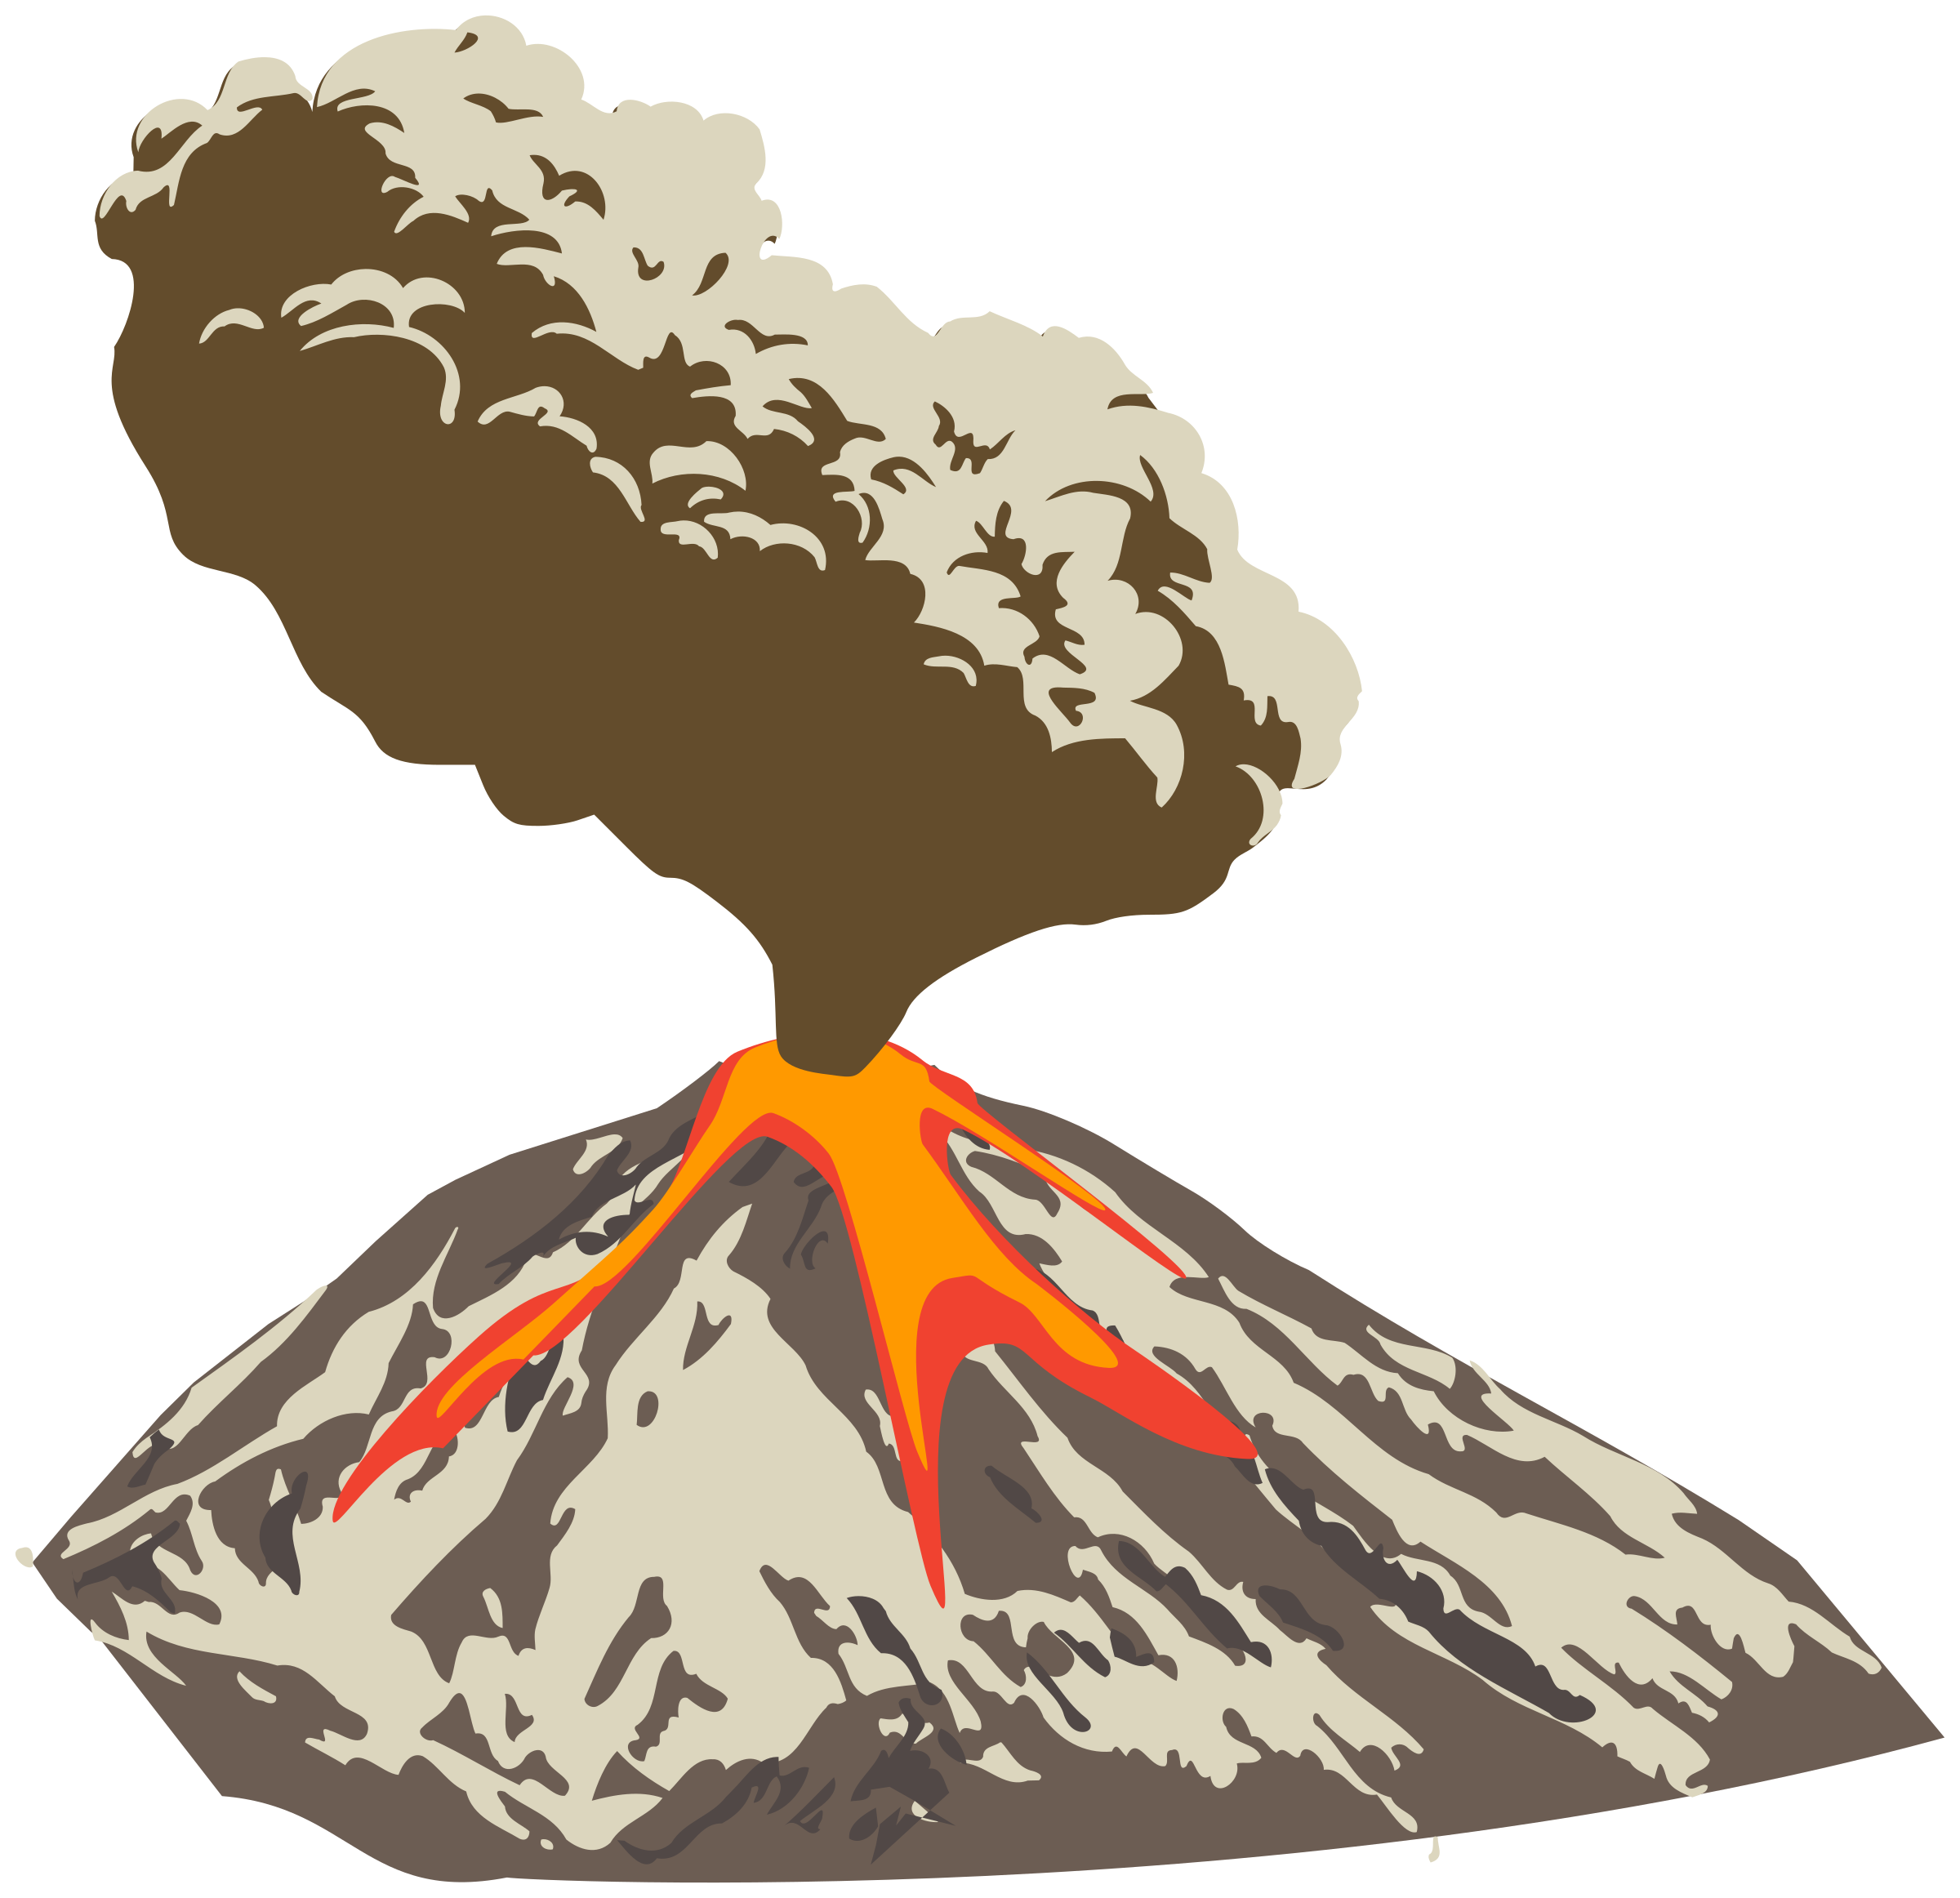 Erupting volcano with plume. Ash clipart lava flow vector download